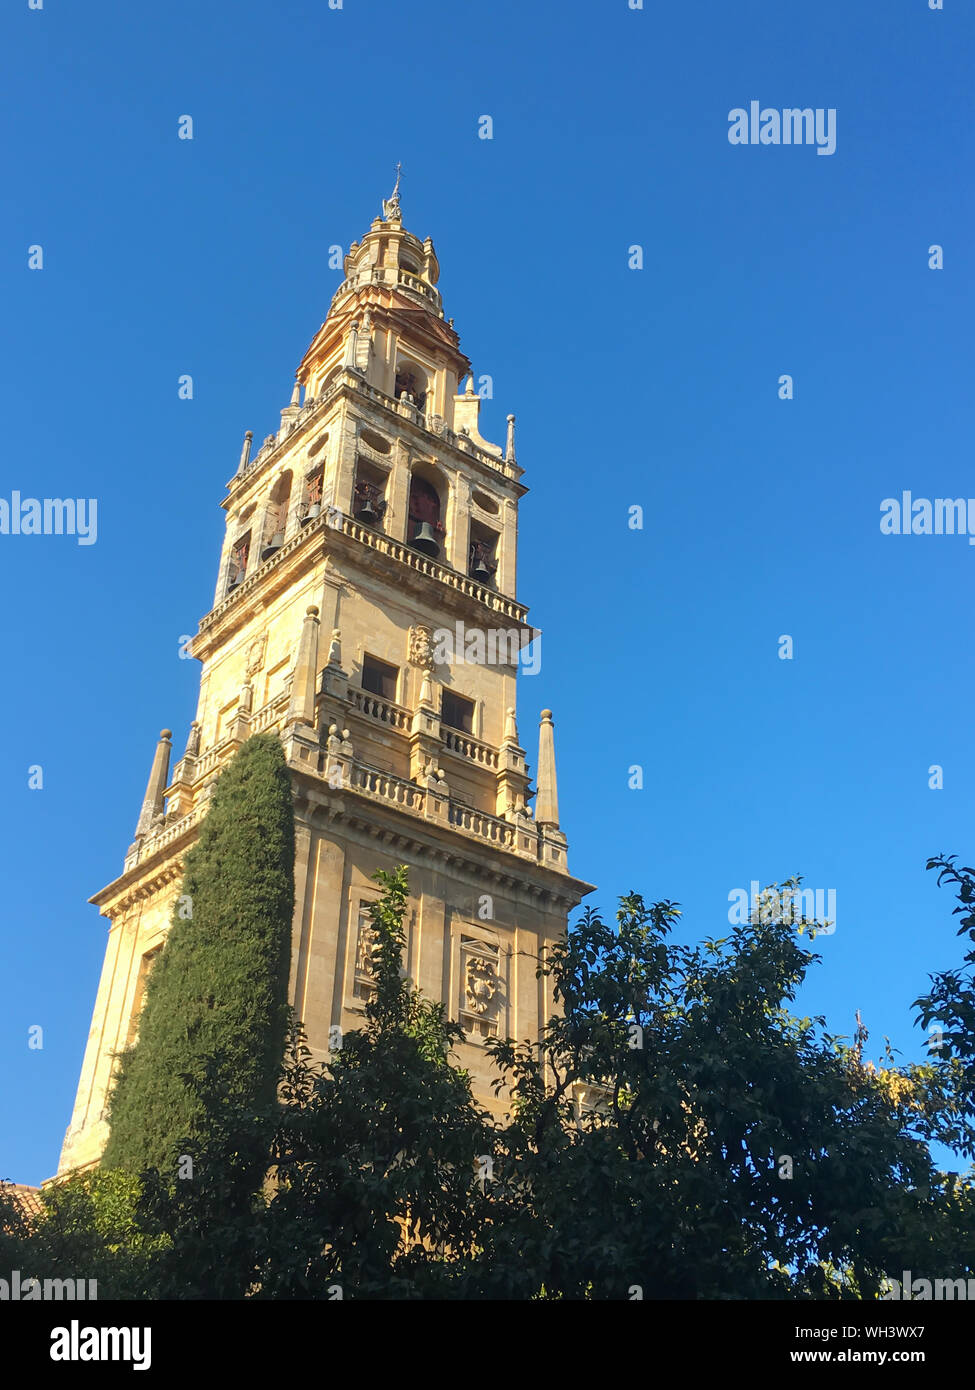 Bell tower of the Cathedral Great Mosque of Cordoba, Andalusia, Spain Stock Photo